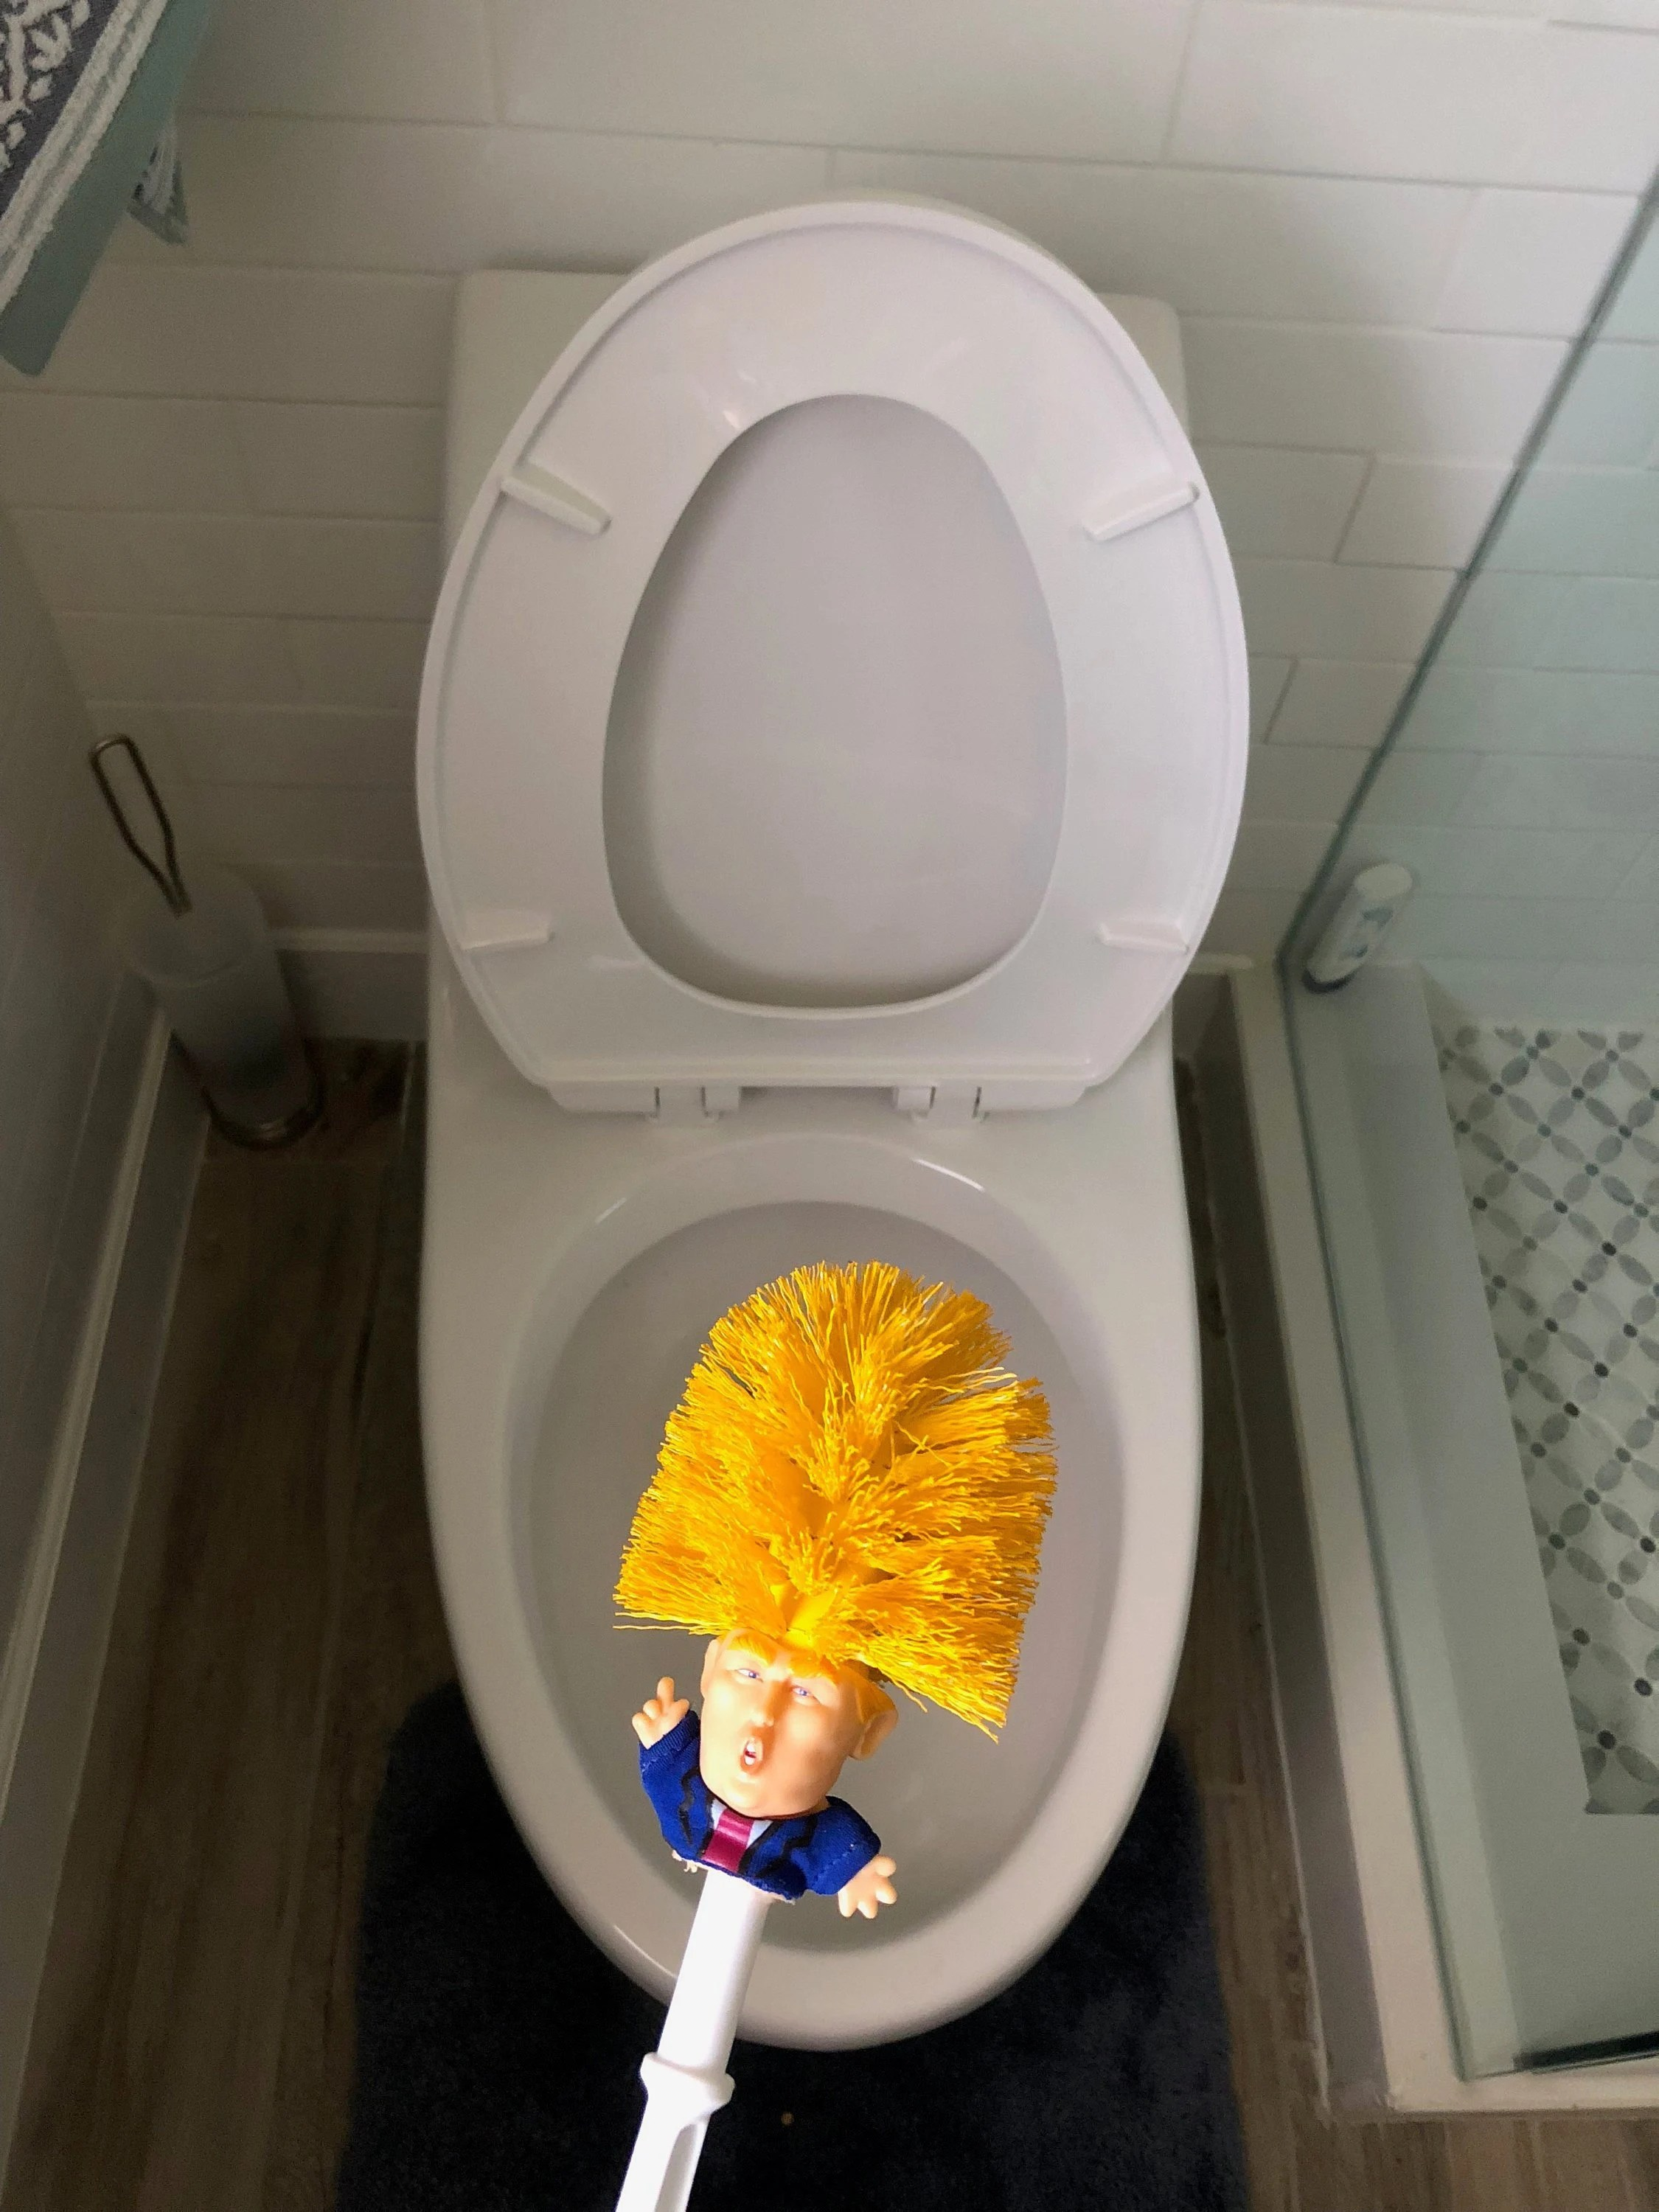 Balai De Toilette Original Commander In Mist Klobürste Donald Trump Klobürste Machen Ihre Toilet Great Again Commander In Crap